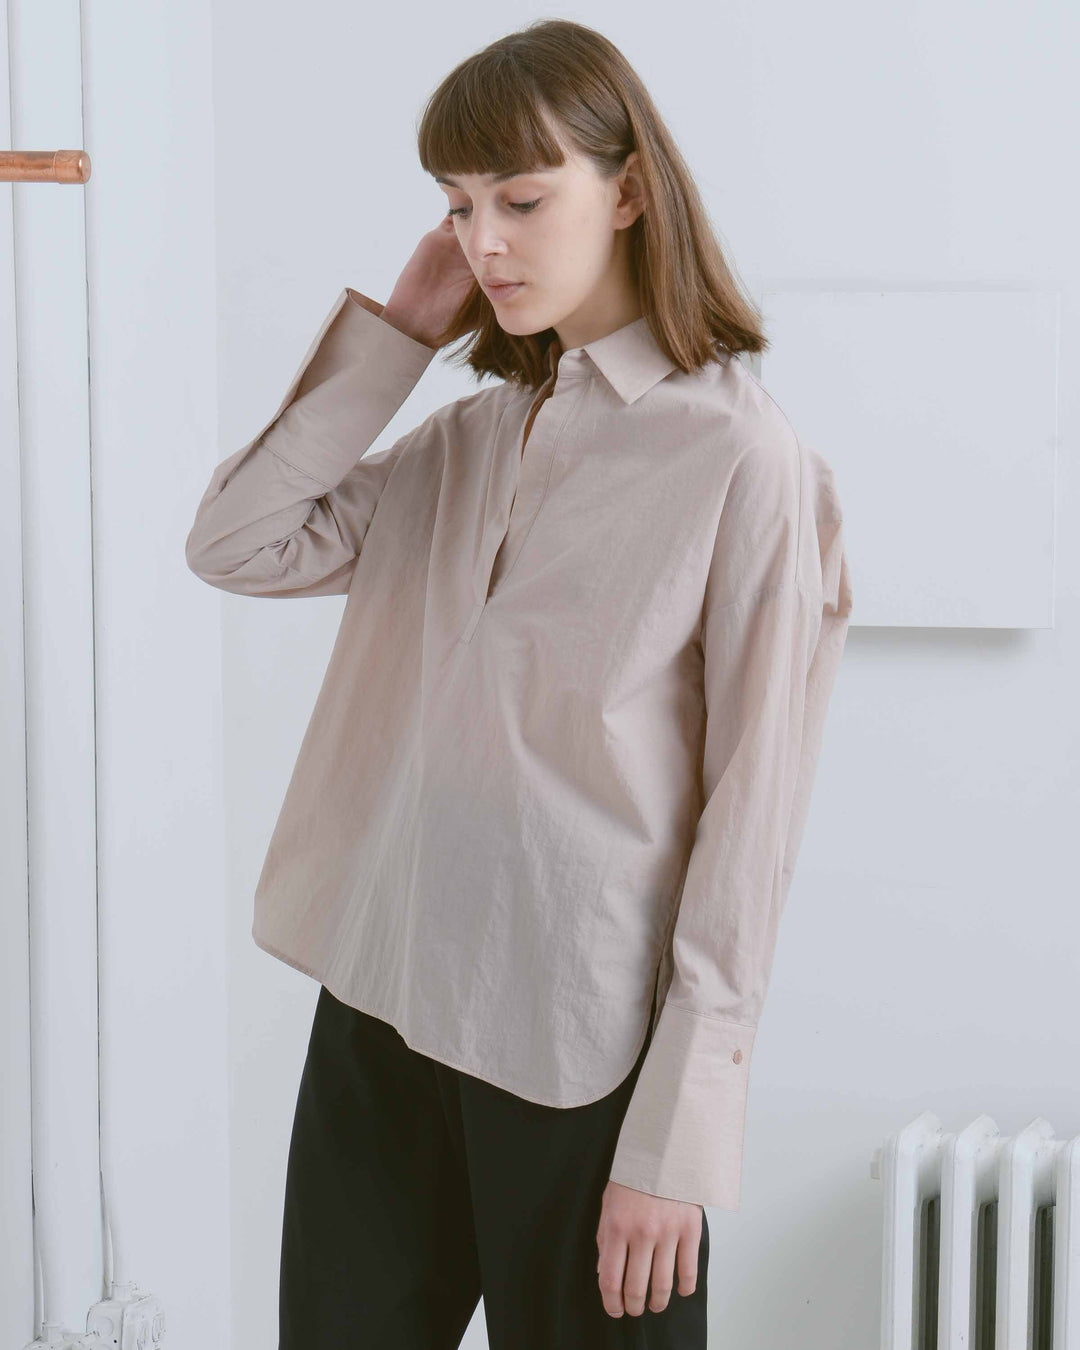 Tan Open Collared Shirt